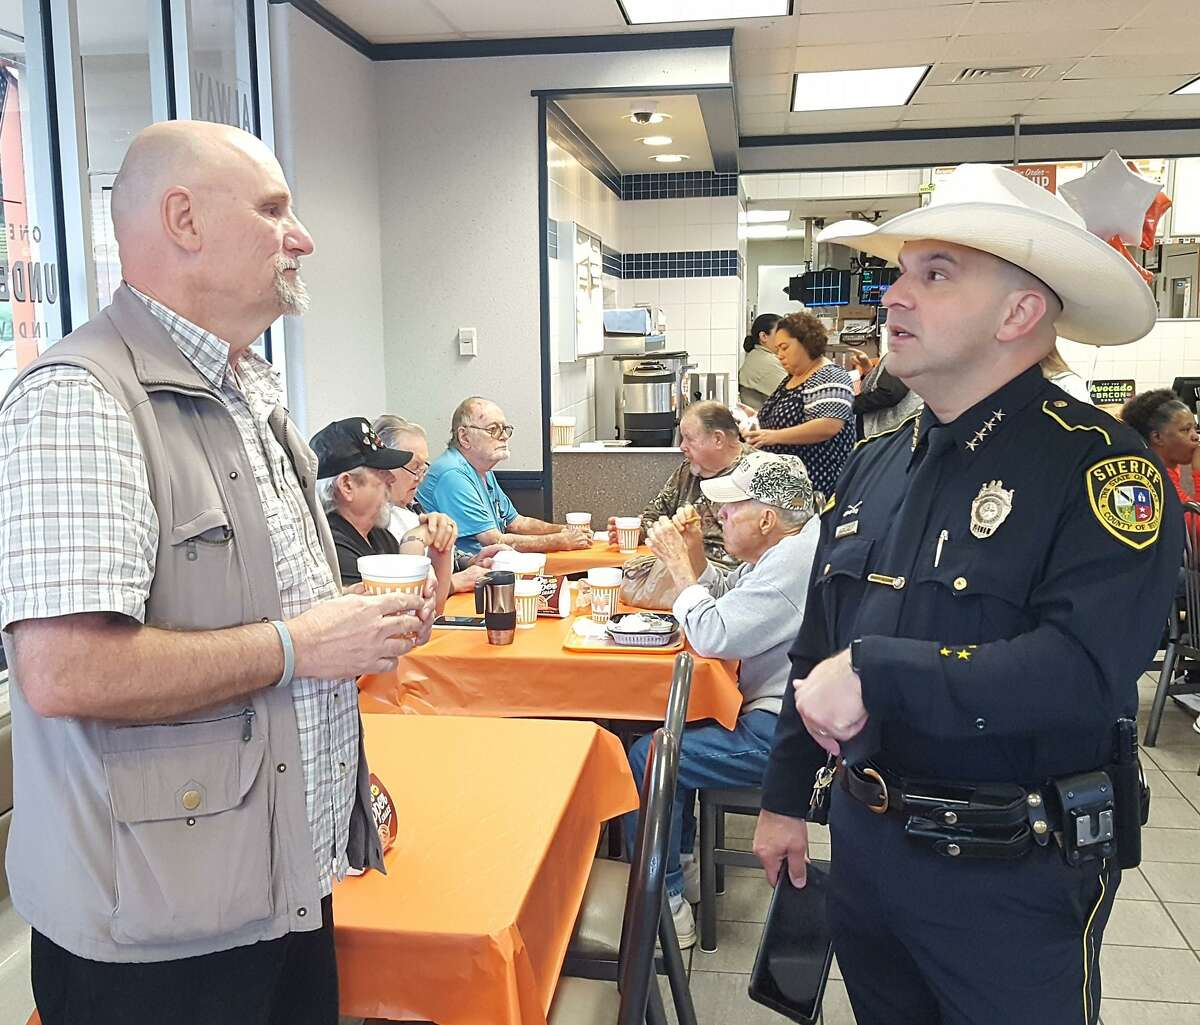 Bexar County Sheriff Javier Salazar speaks with Dr, George Patrin, left, on Saturday before addressing a standing-room-only crowd at the FM 78 Whataburger during one of the